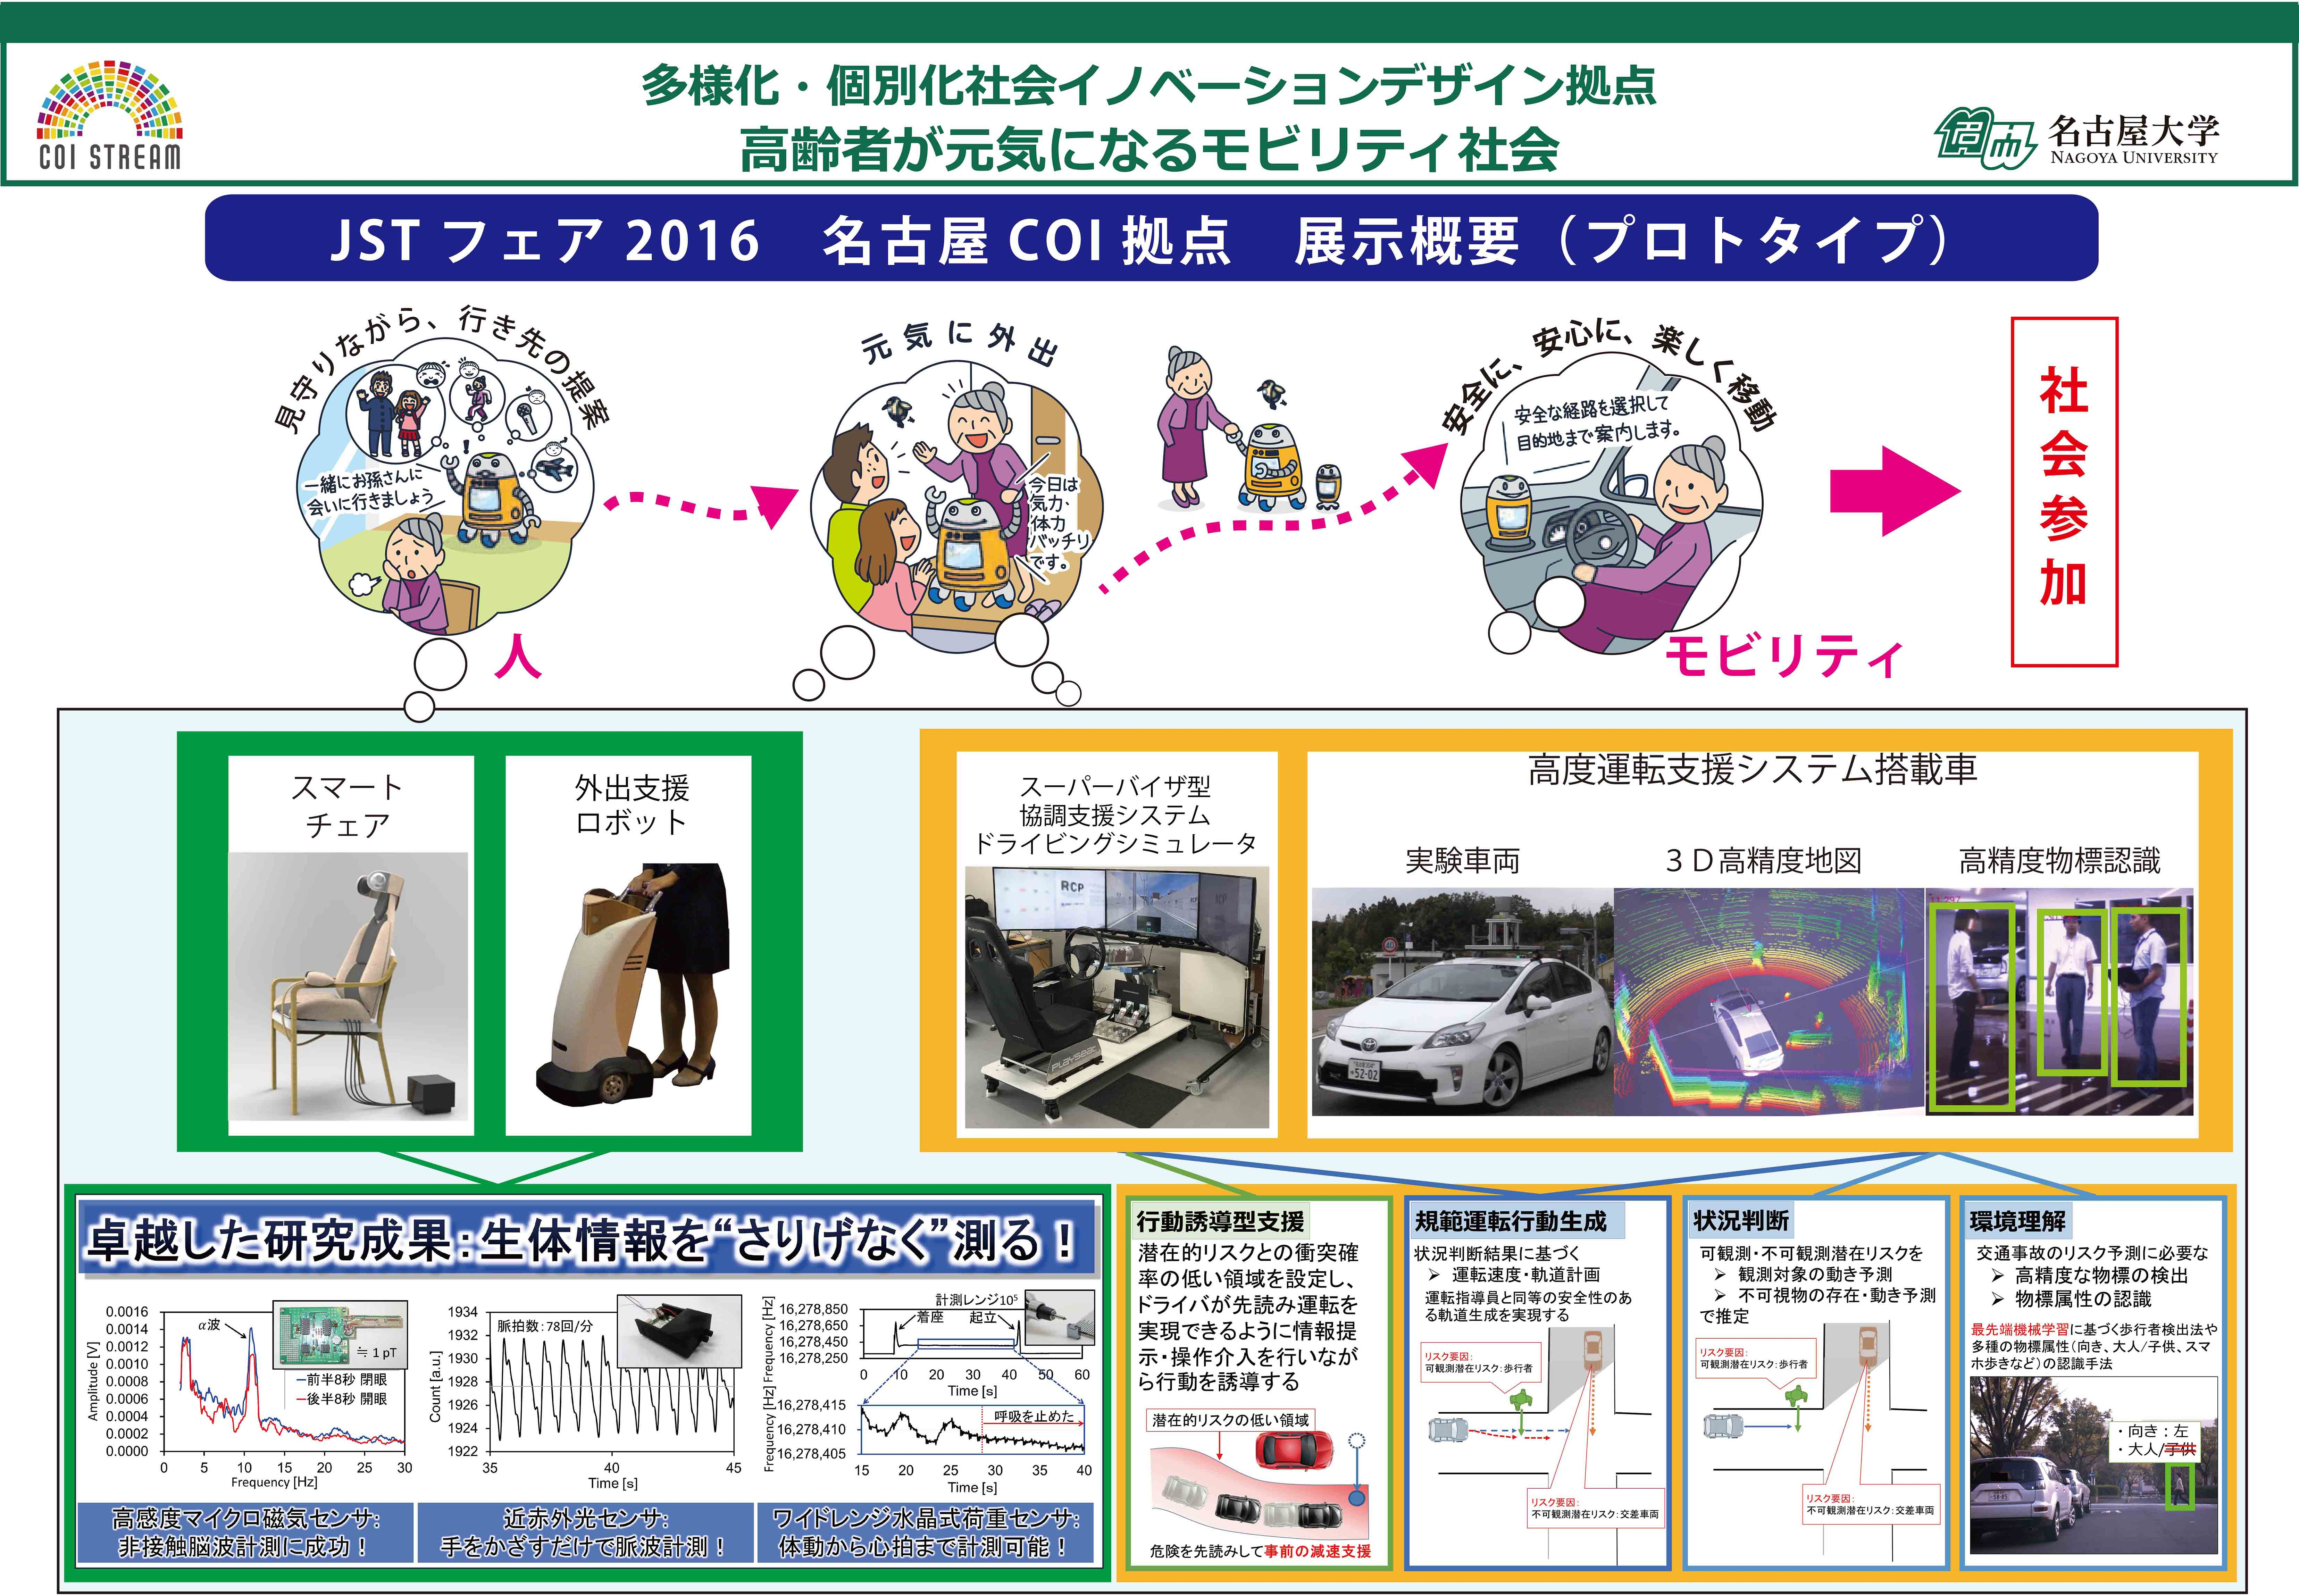 poster、運転支援、自動運転、高齢者、社会参加、Driving Assistance, Self-Driving, Senior Citizens, Community Participation